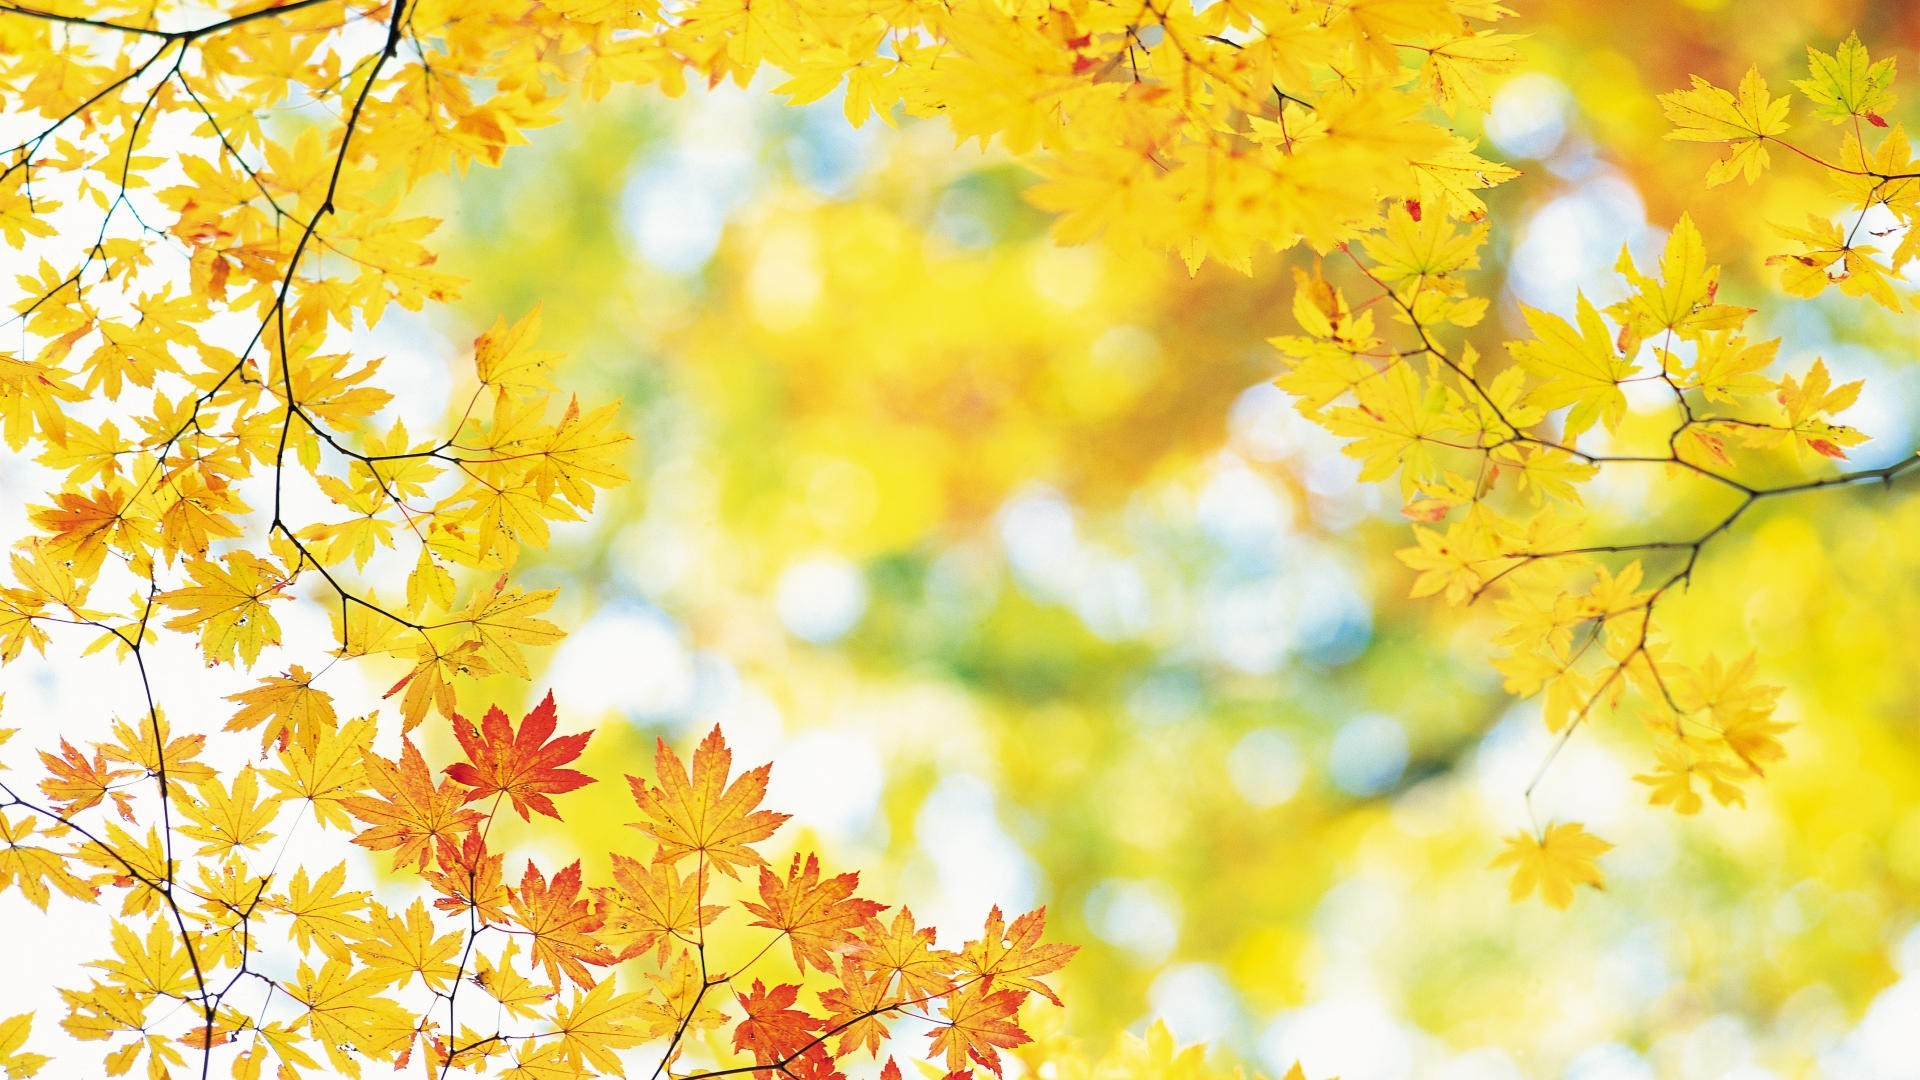 fall wallpaper for iphone 5c